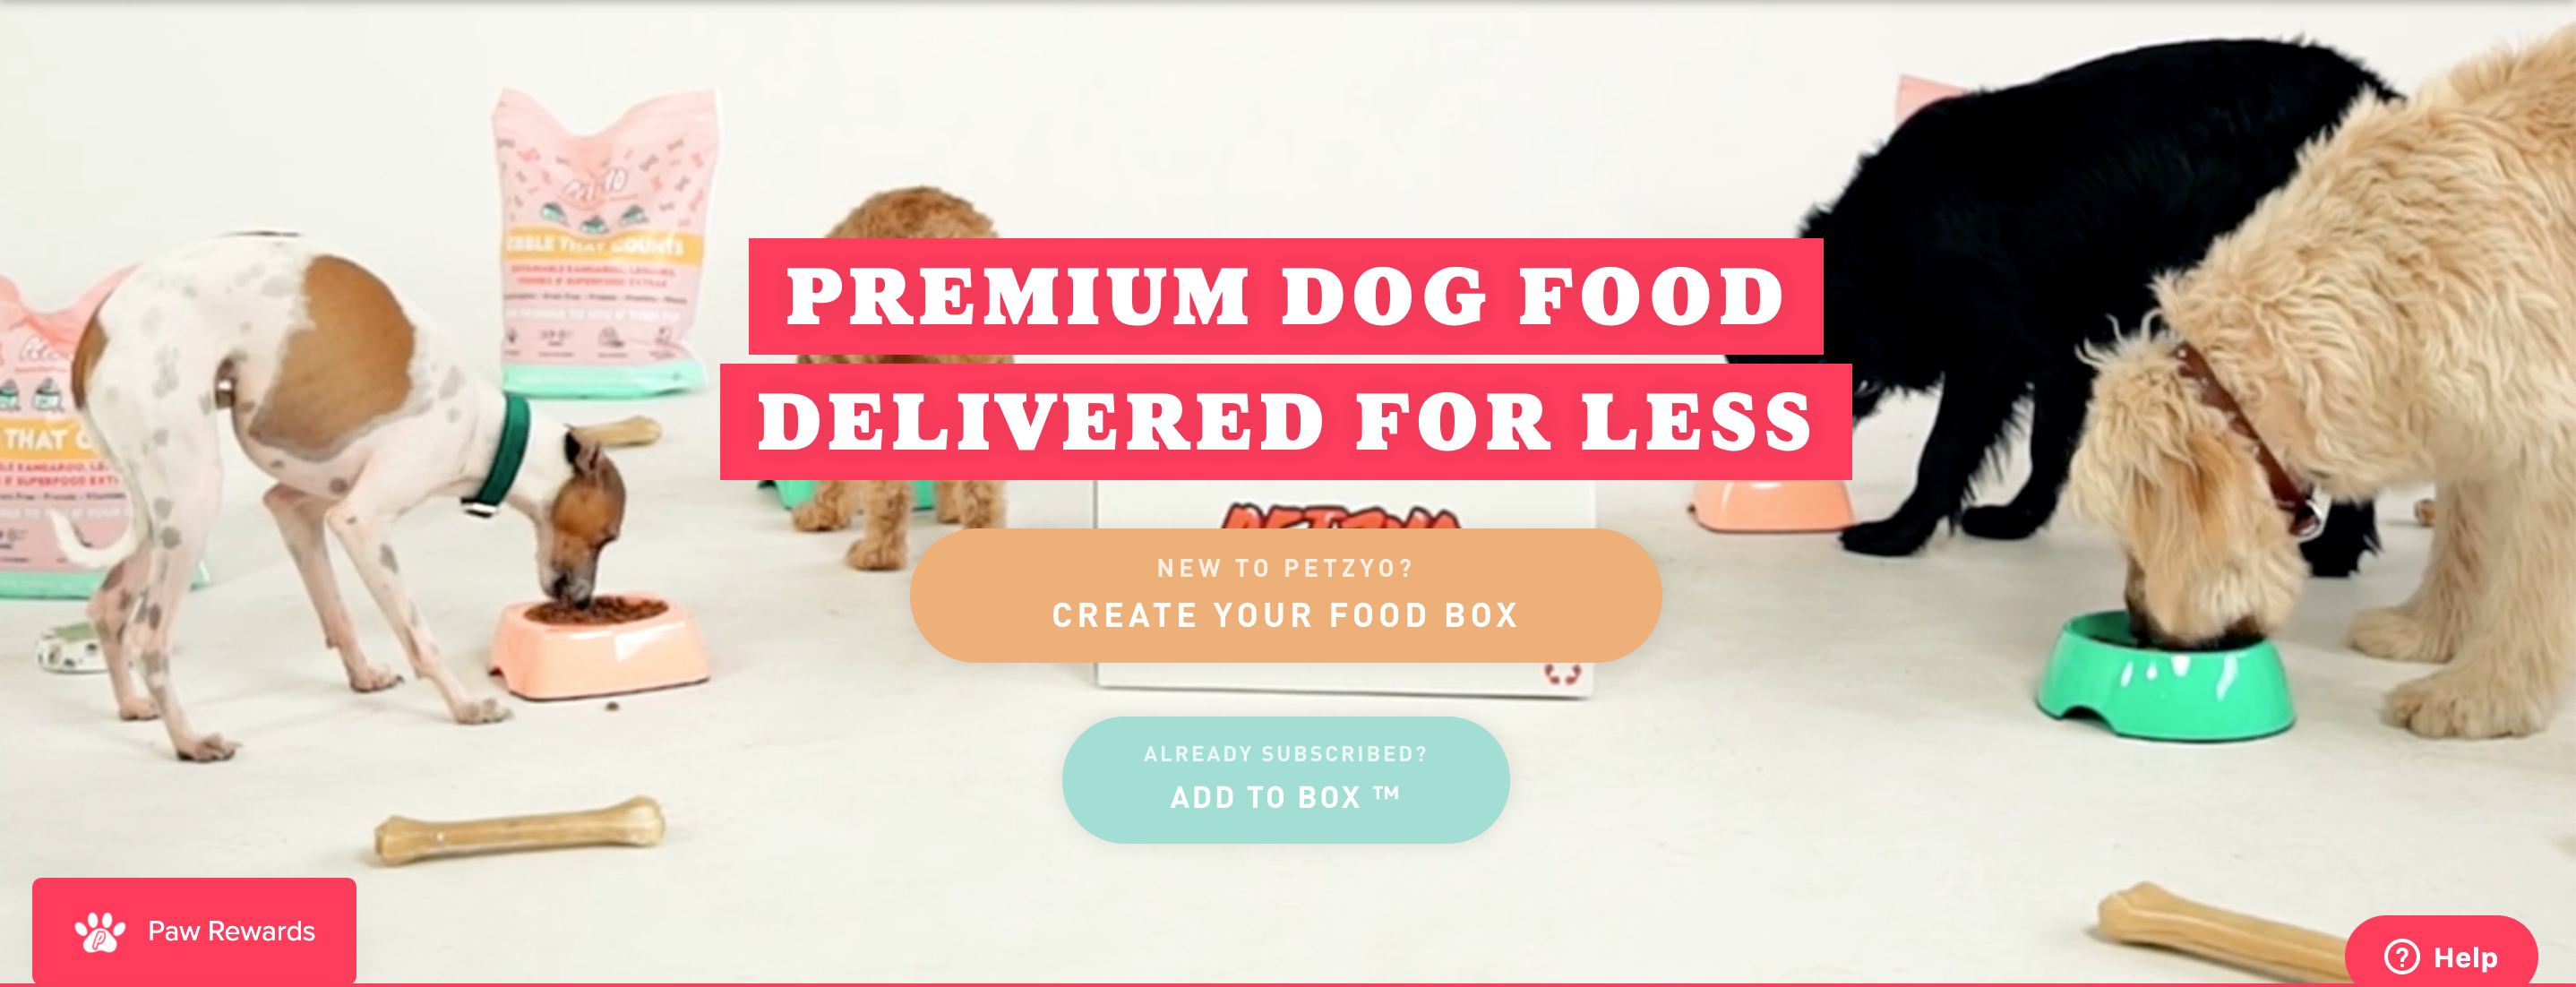 Four dogs eating from colourful bowls on Premium Dog Food banner